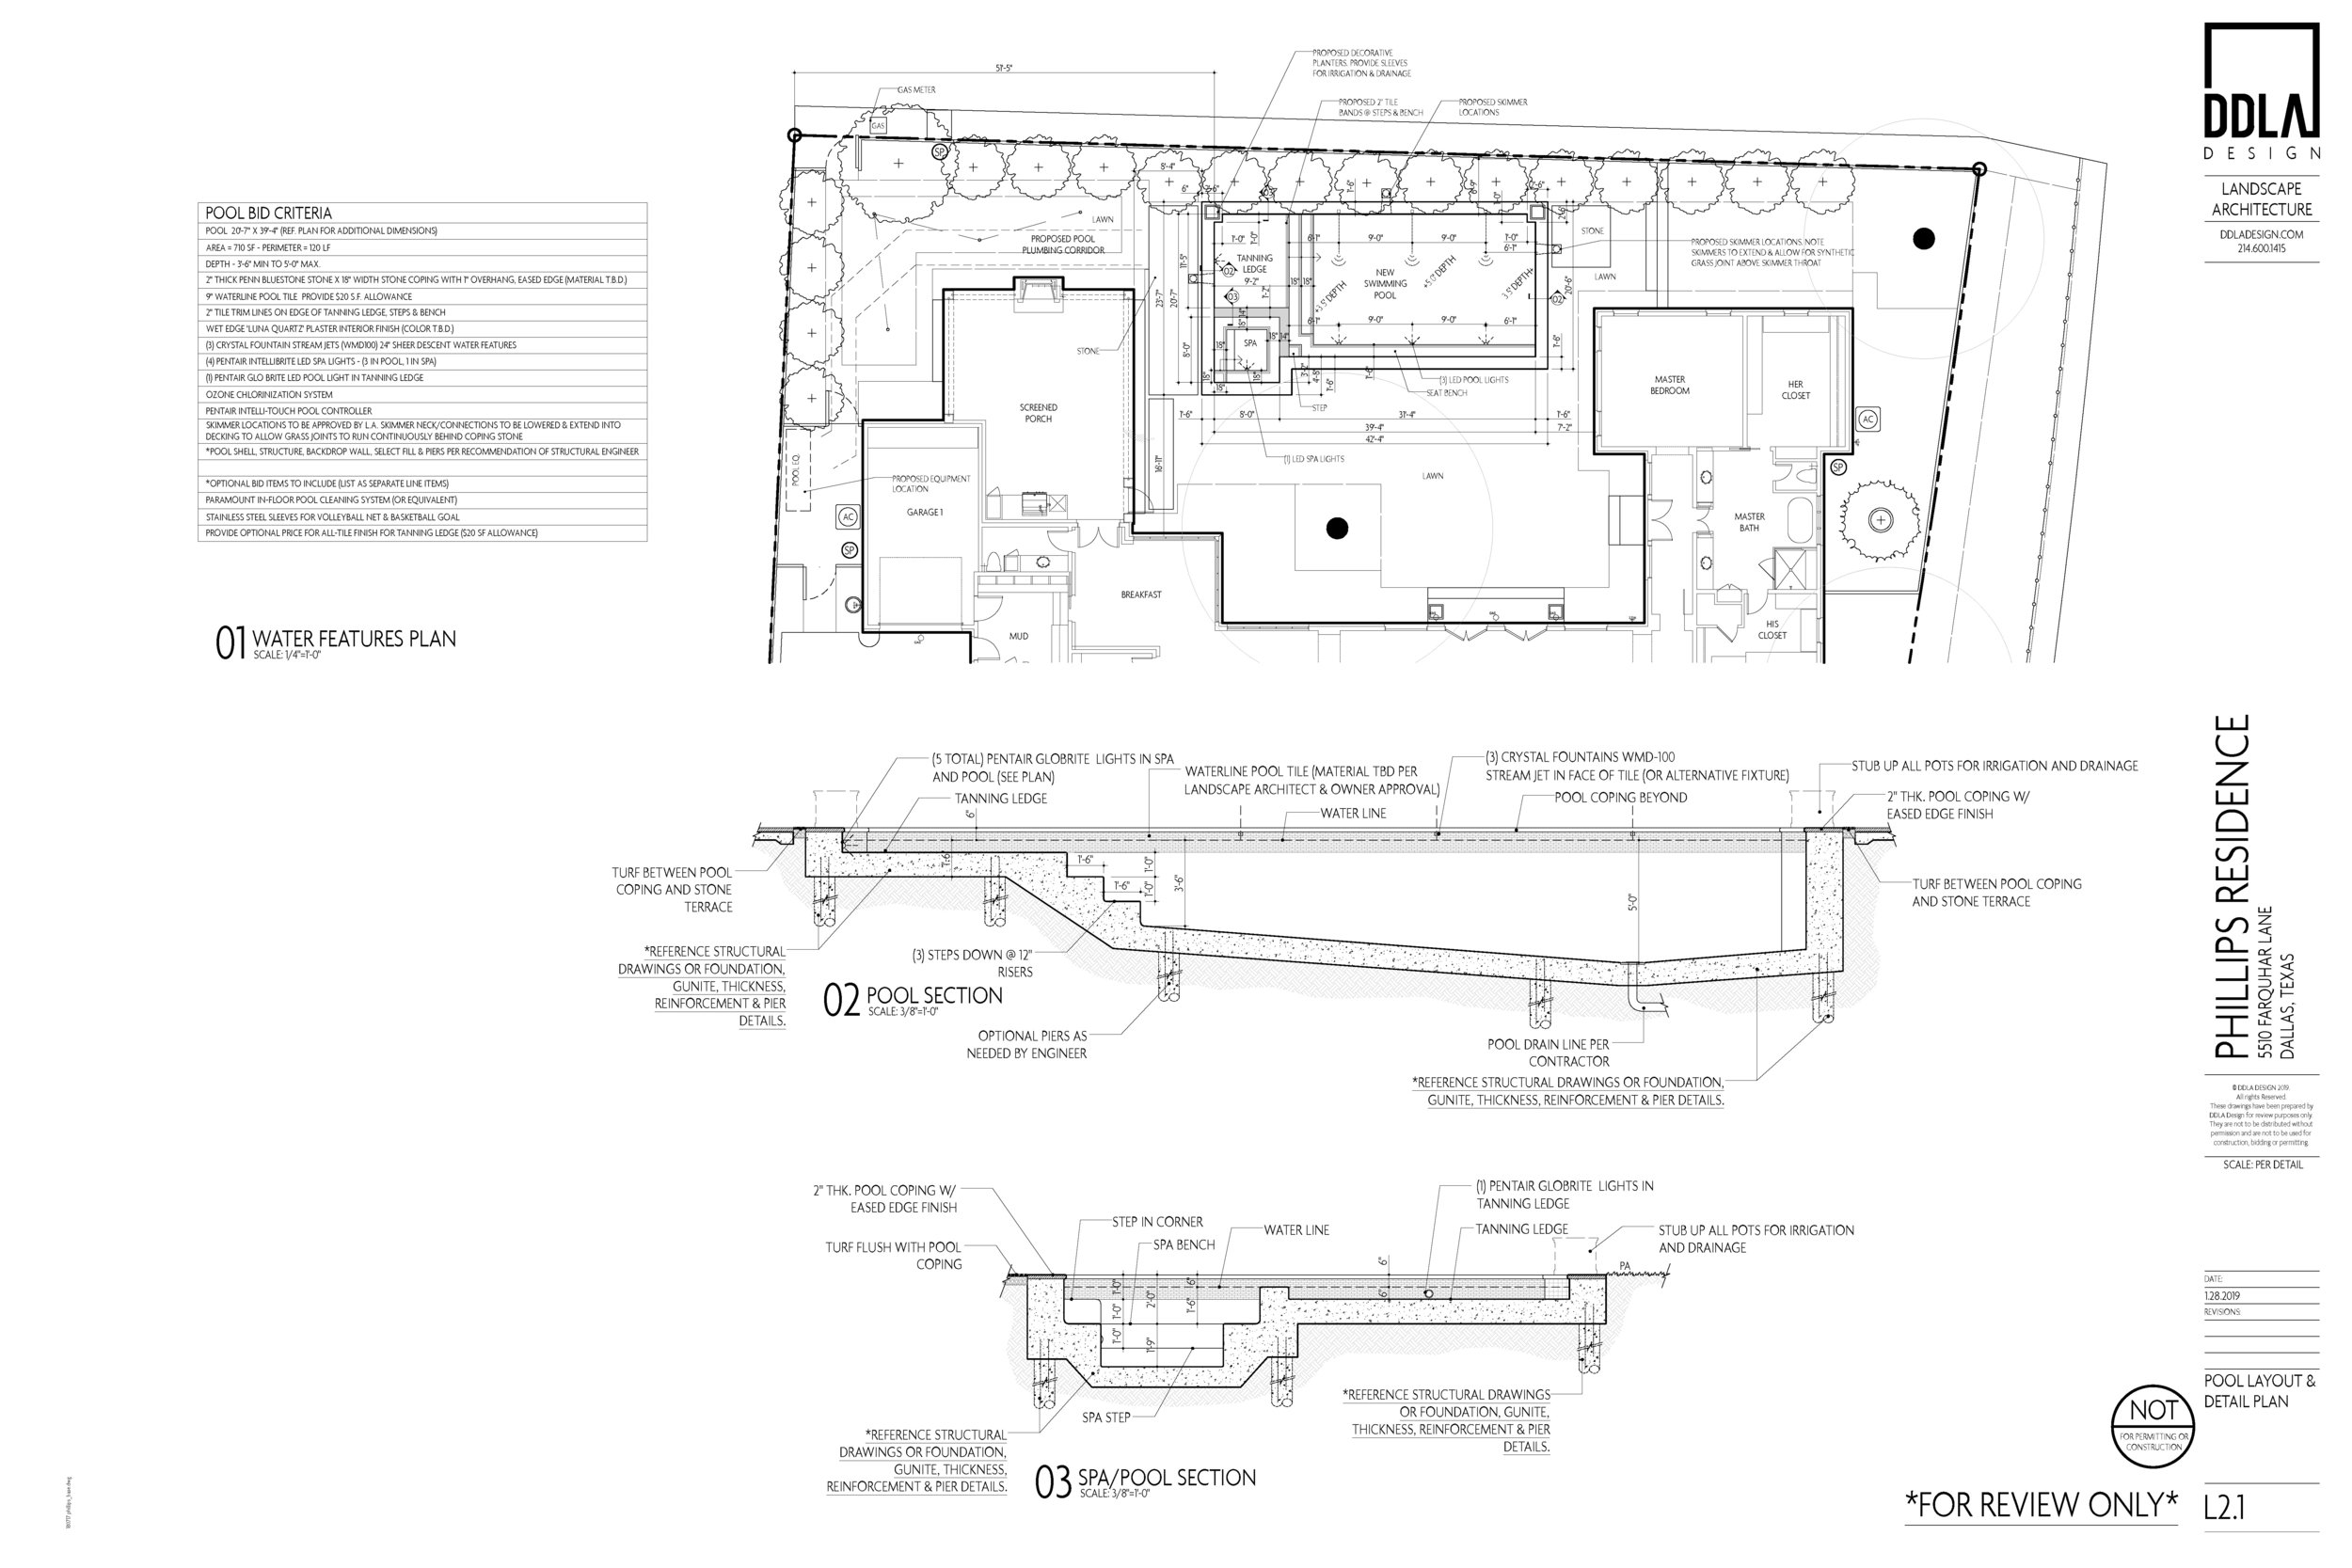 190128 phillips_L2.1 pool layout.jpg